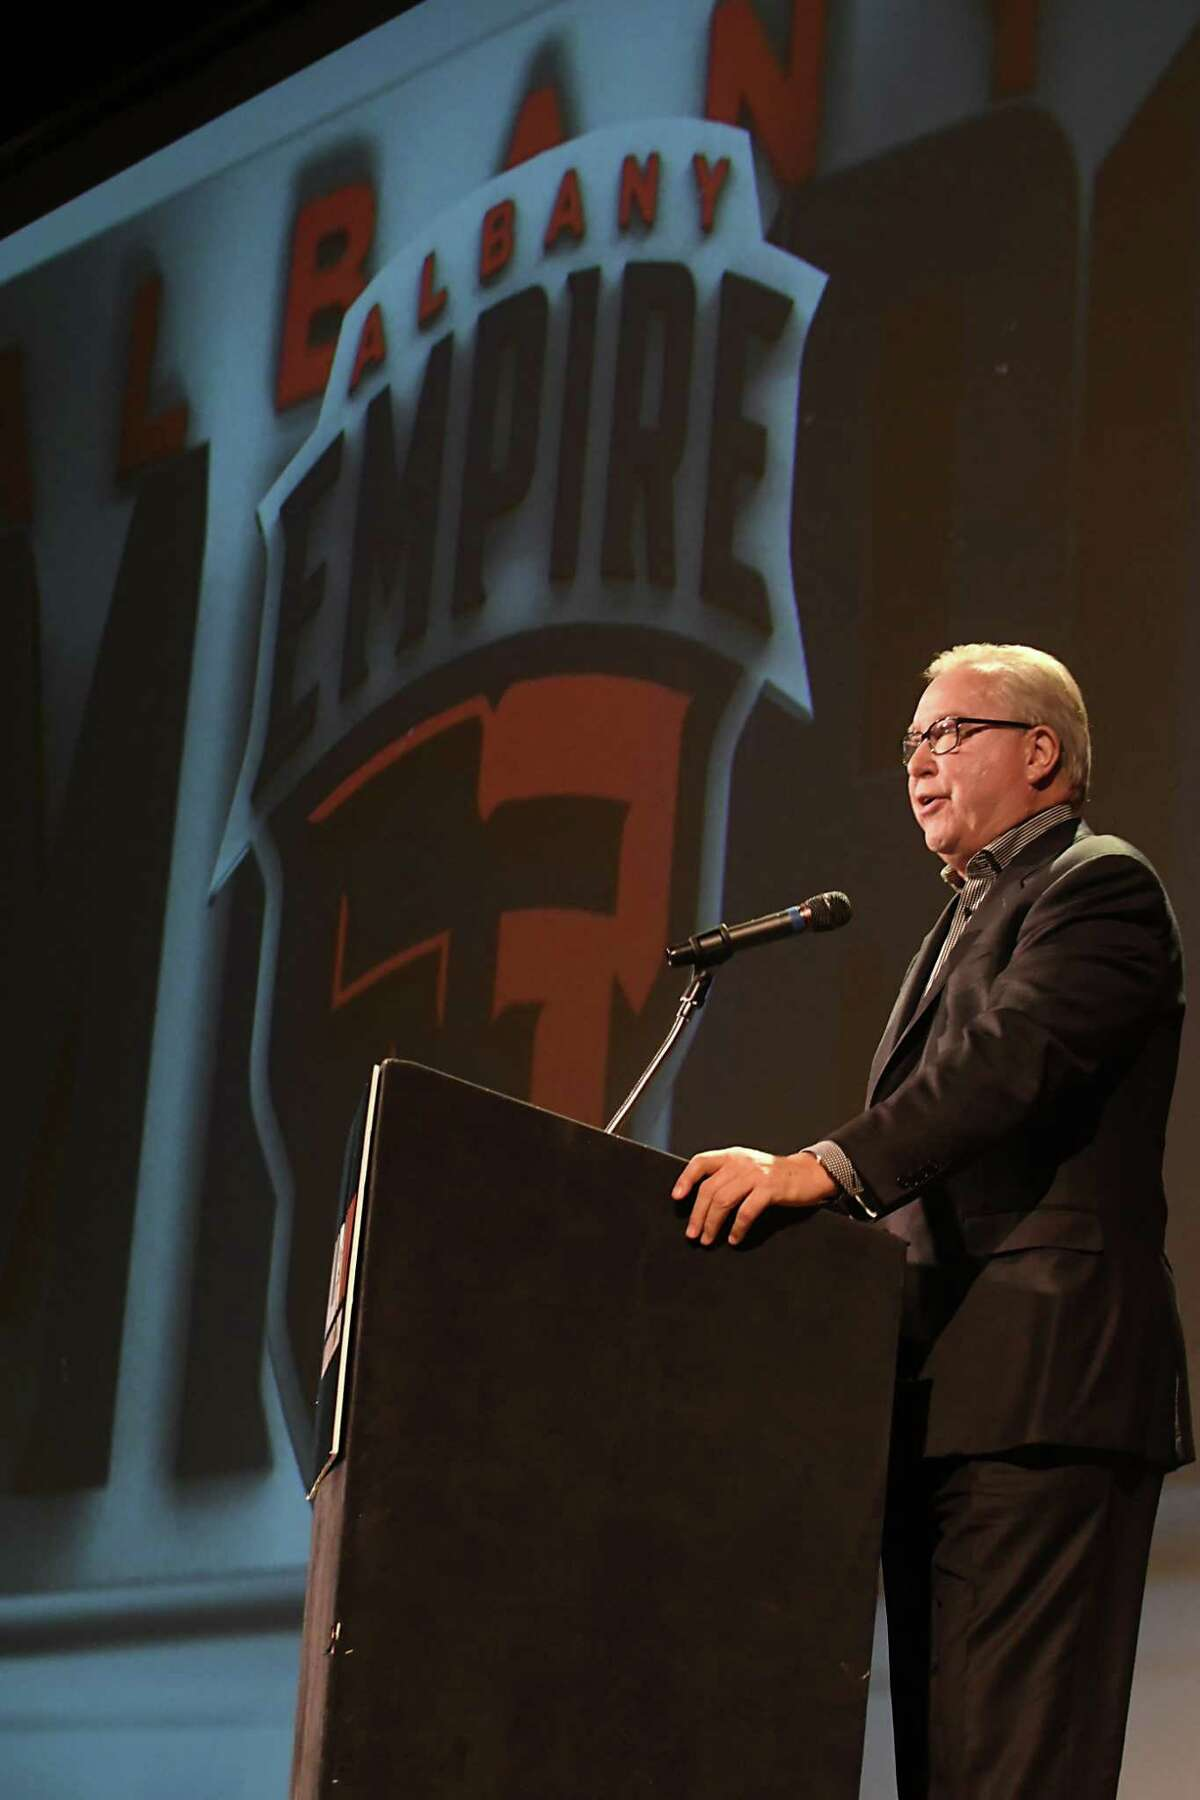 """Former NFL quarterback Ron Jaworski speaks during a news conference at the Palace Theater to reveal """"Albany Empire"""" as the name of the Arena Football League team based at Times Union Center on Tuesday, Jan. 23, 2018 in Albany, N.Y. (Lori Van Buren/Times Union)"""